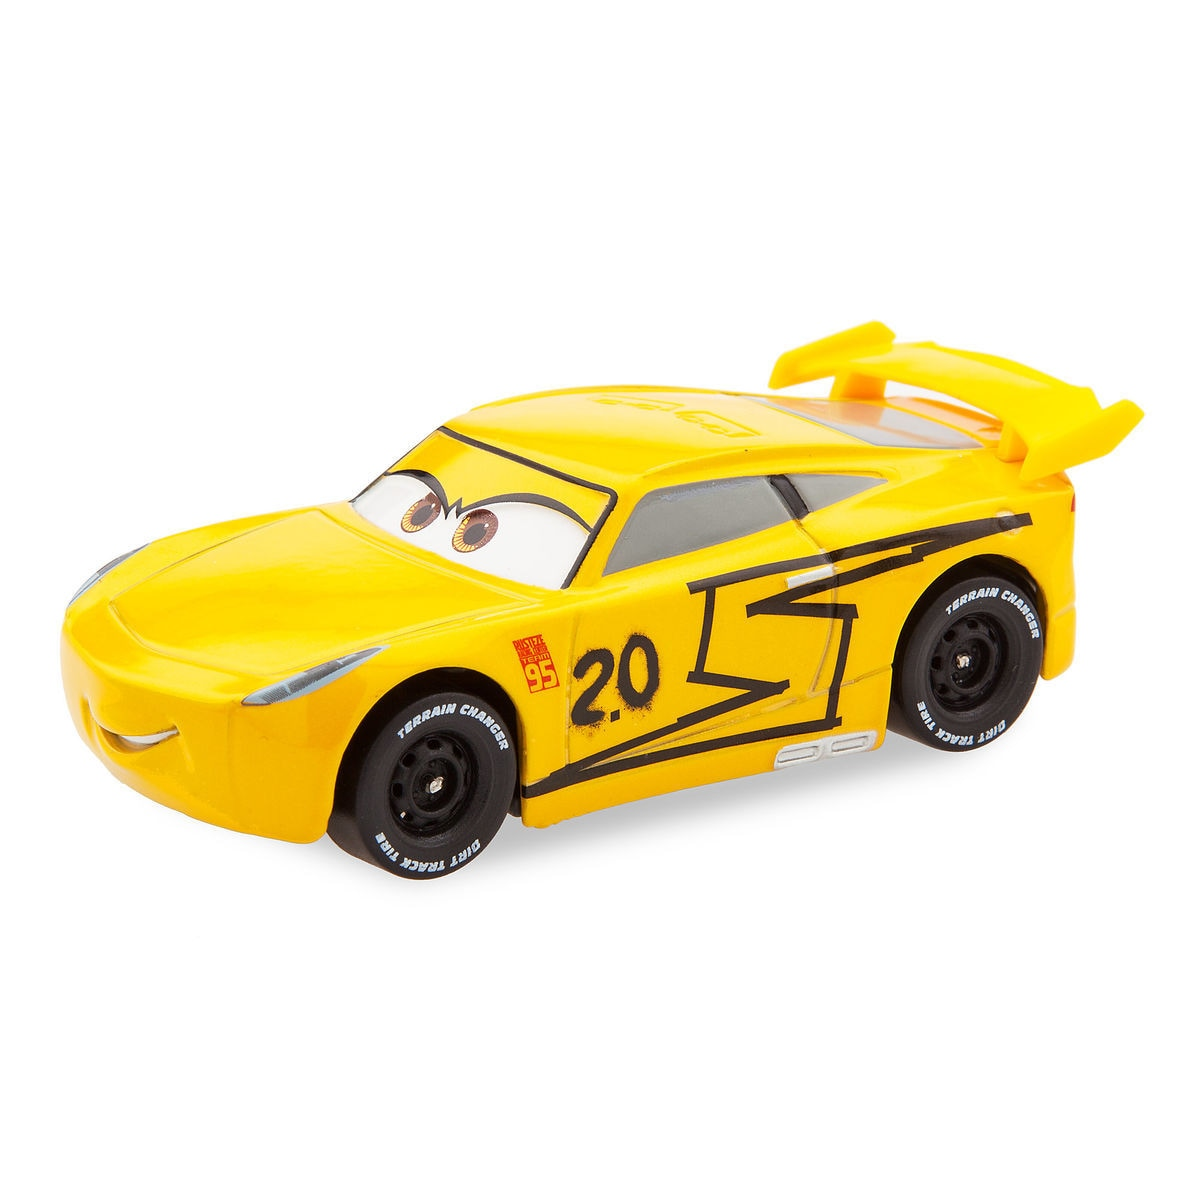 Cruz Ramirez Die Cast Car - Cars 3 | shopDisney